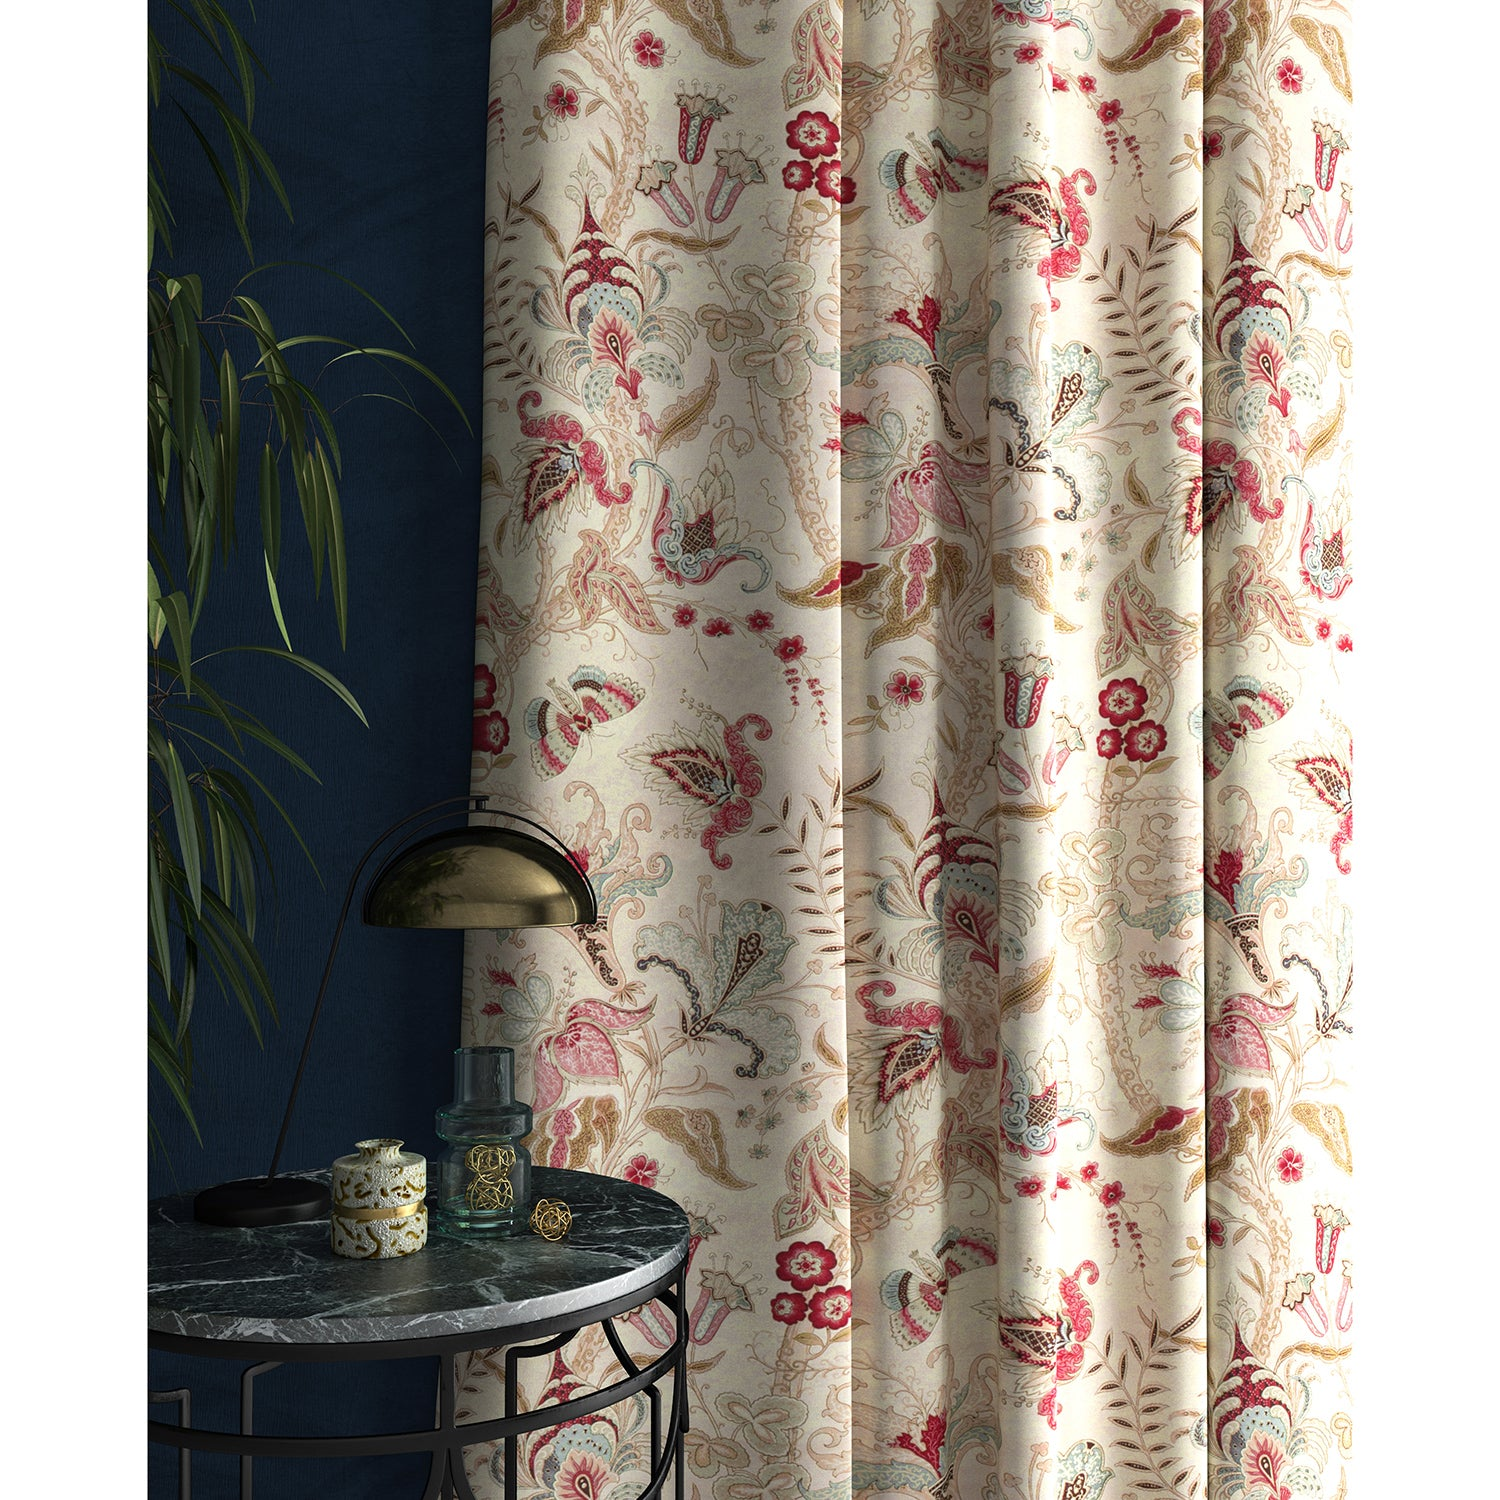 Curtain with a white fabric with pink and blue stylised floral design